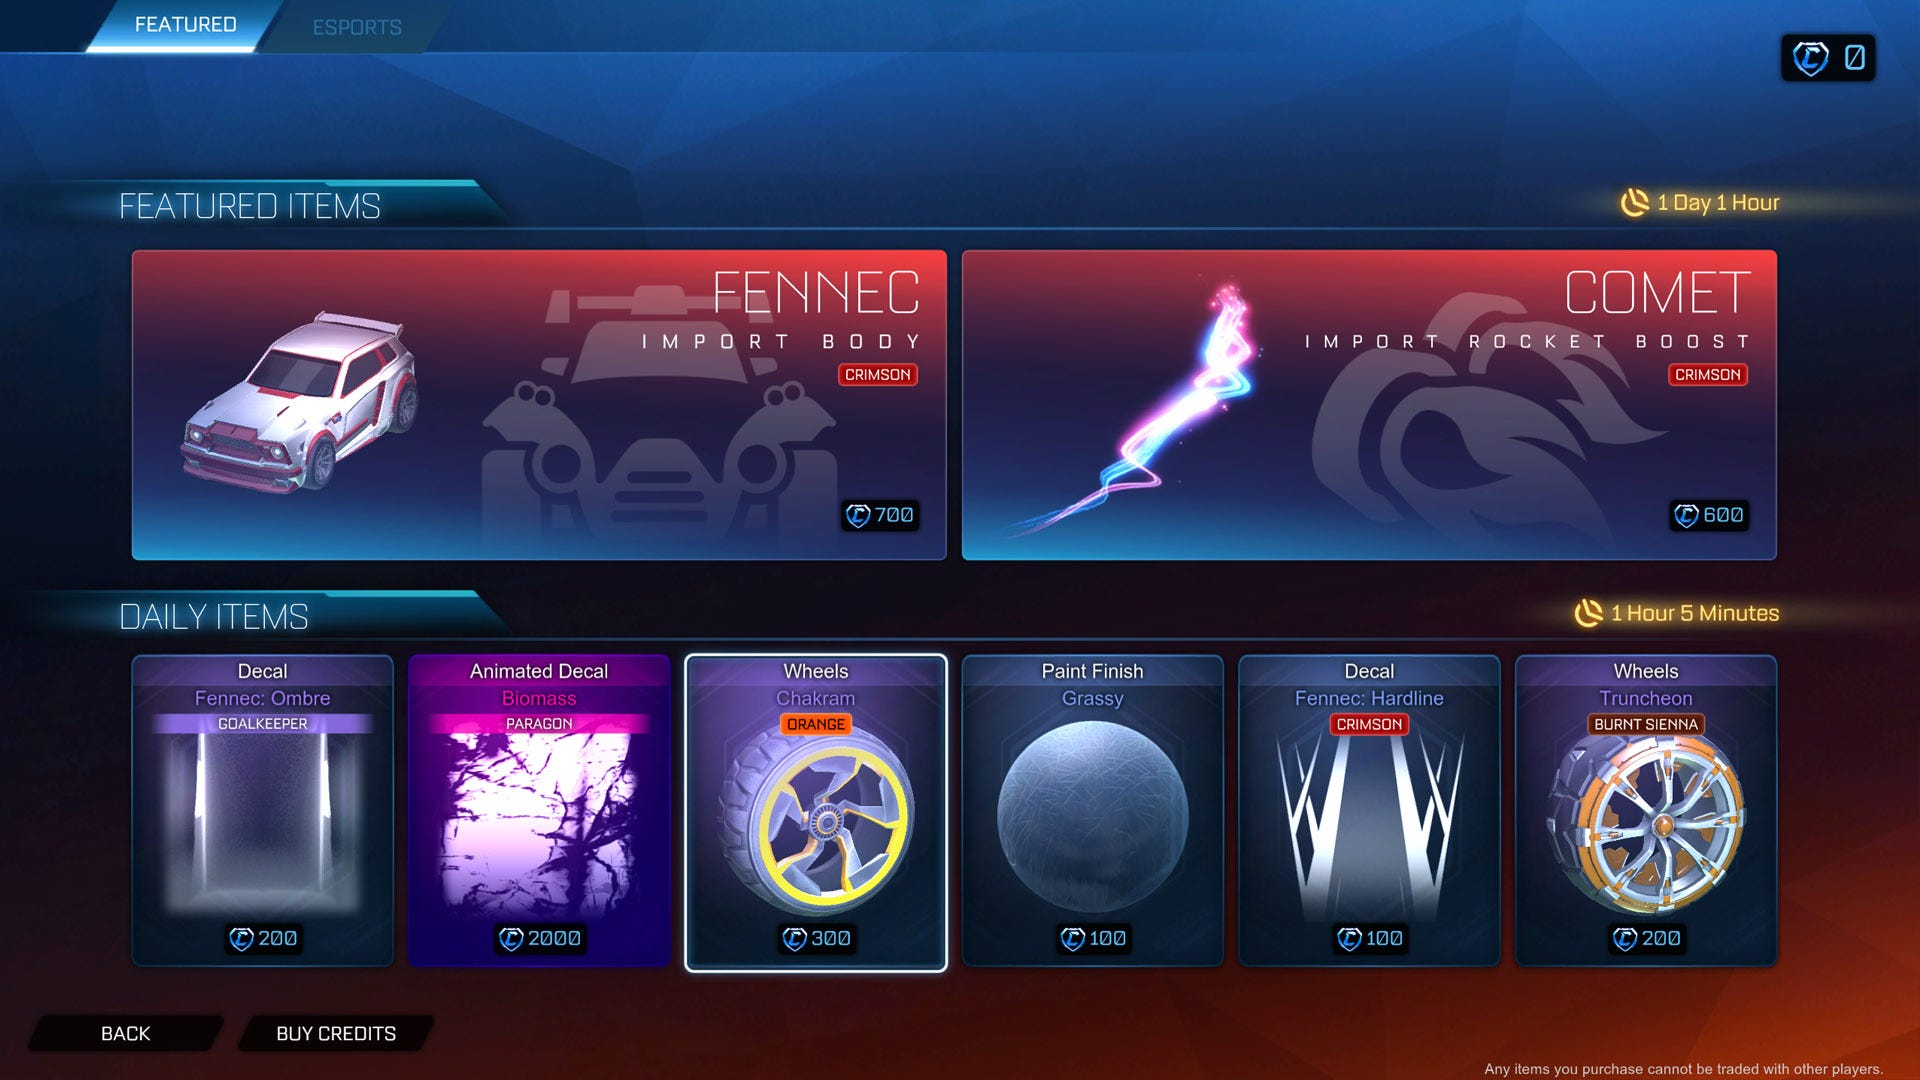 Rocket League cosmetic purchases.